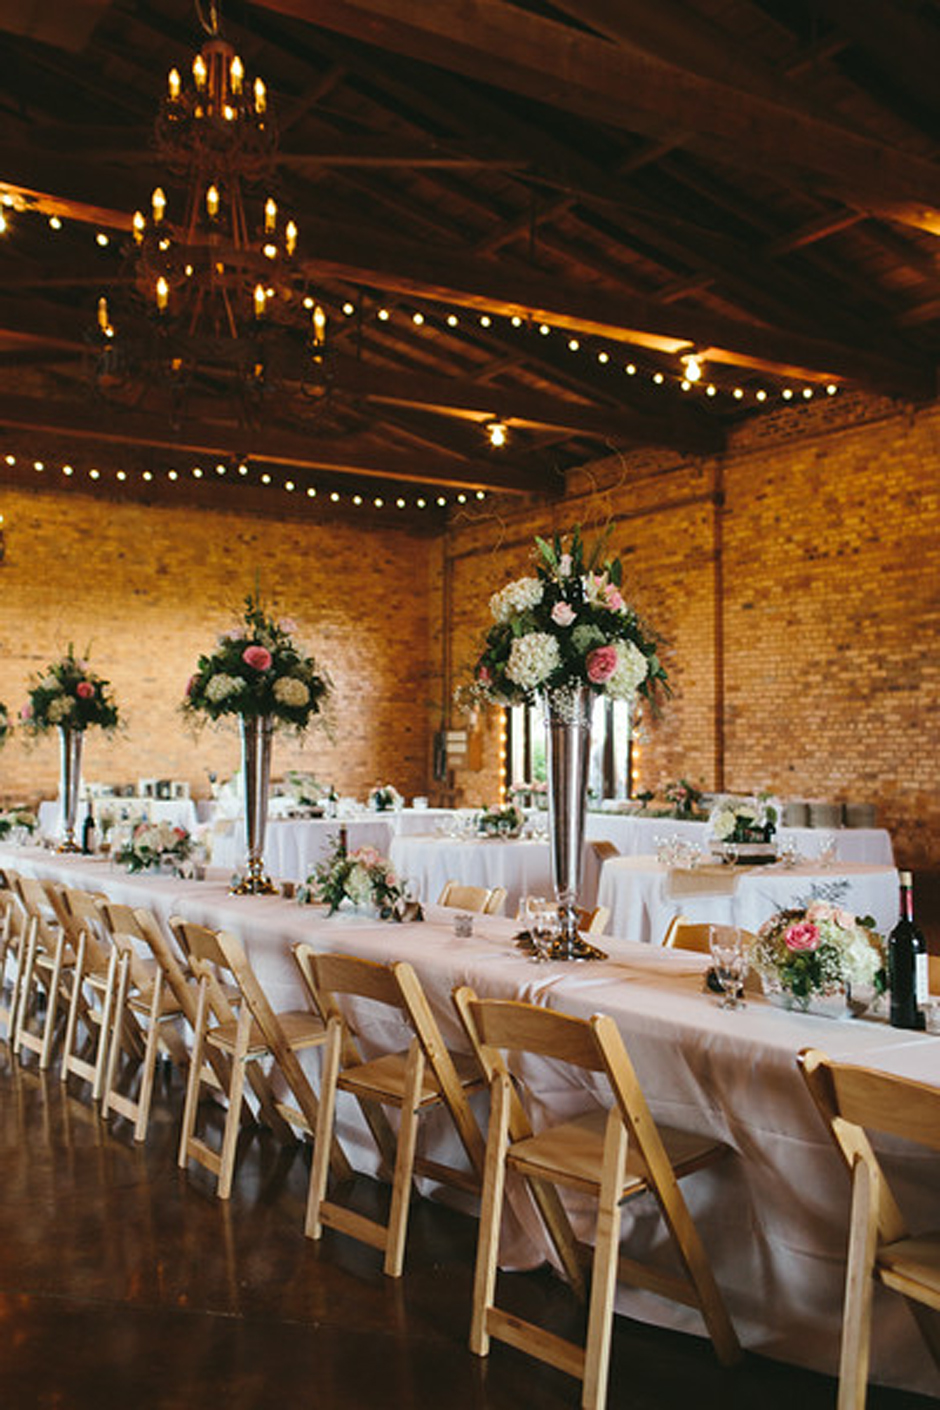 Wedding reception tables with tall, upright centerpieces and wooden folding chairs.